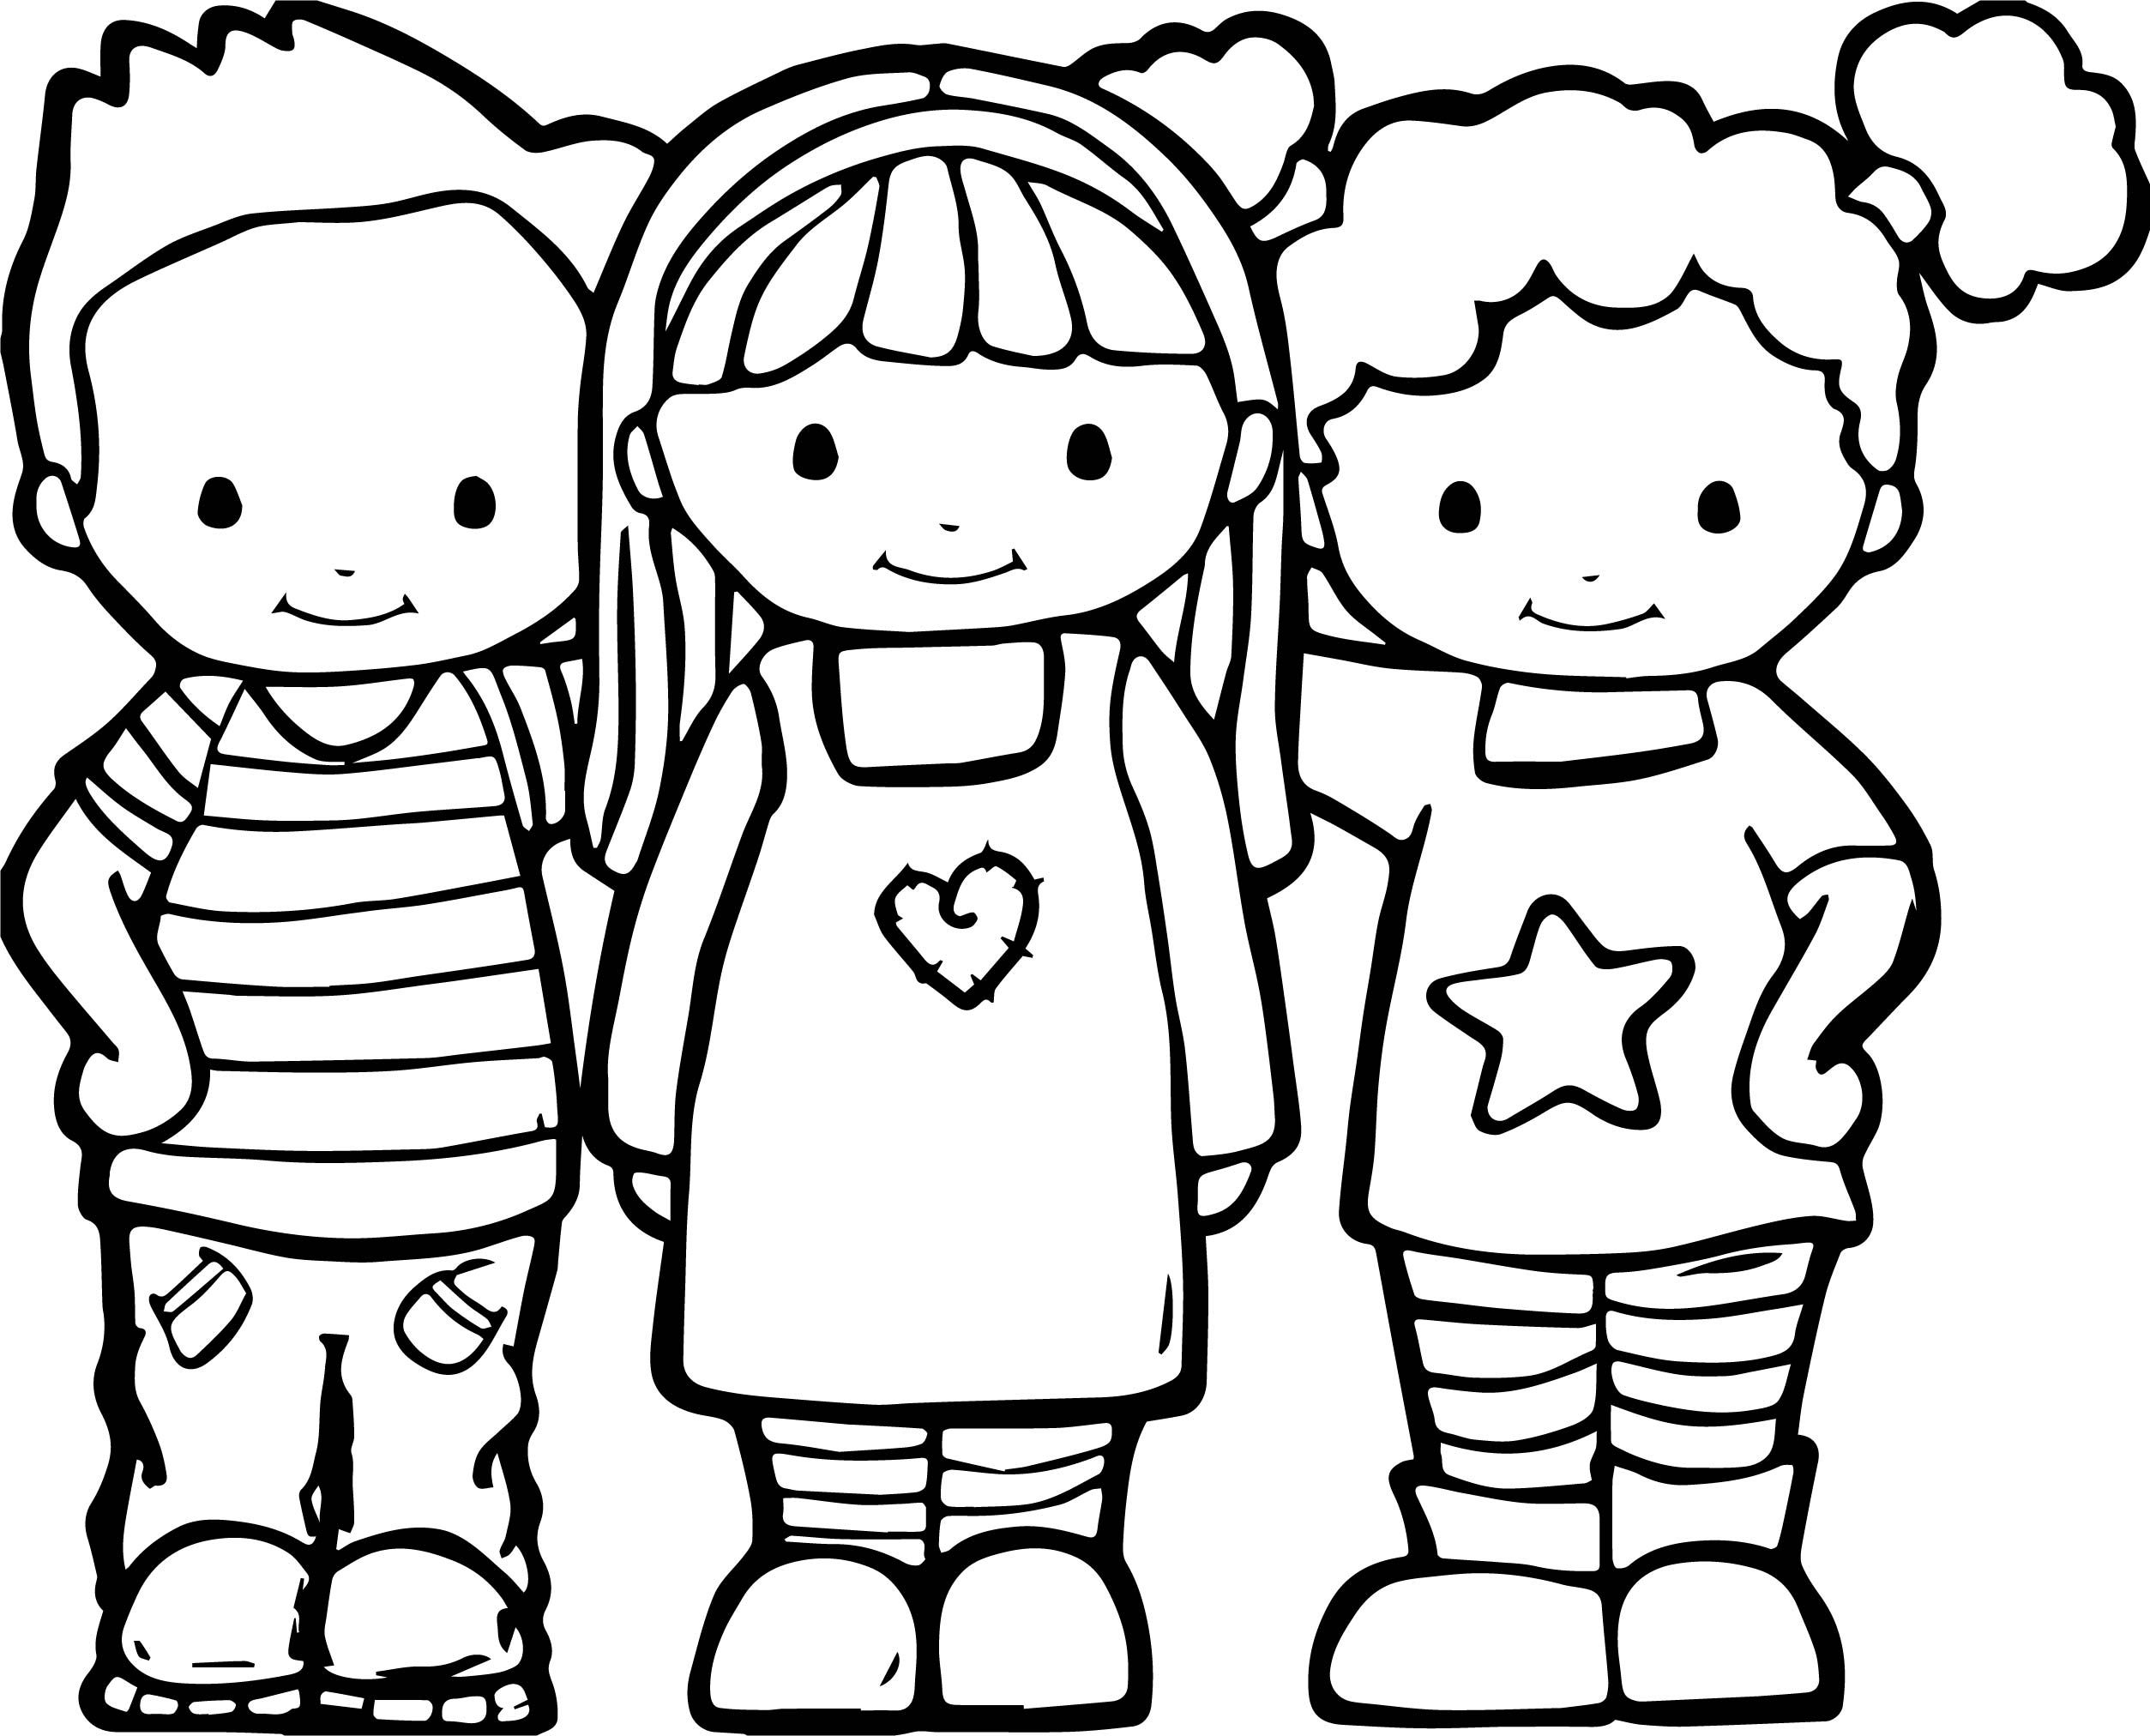 awesome Best Friends Color Coloring Pages | Preschool ...